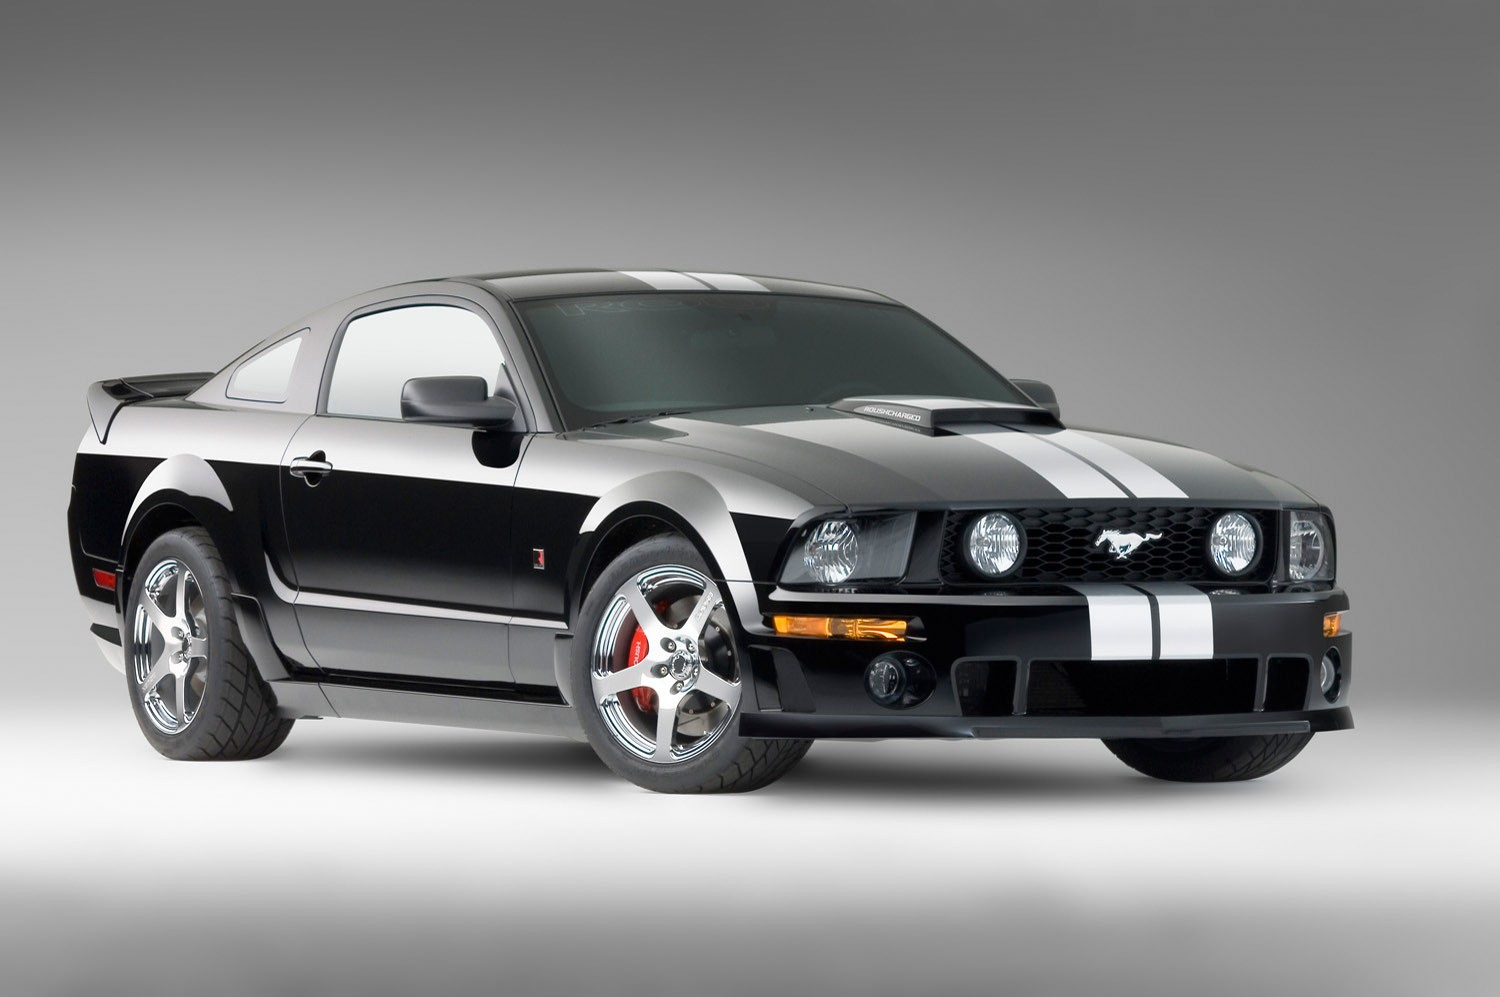 Ford Mustang Cobra 2005 2005-2009 Ford Mustang...